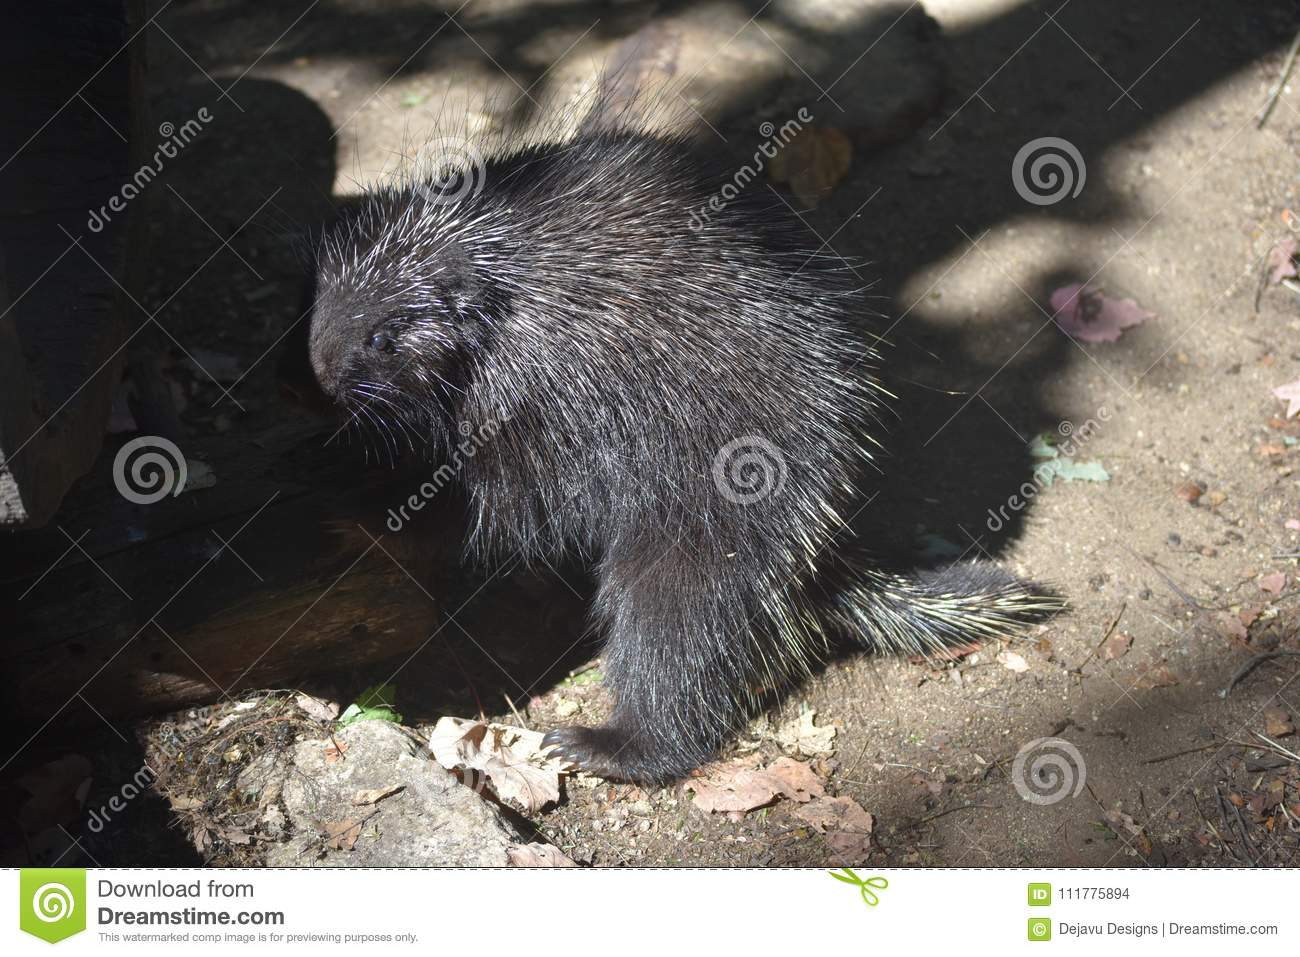 Black porcupine standing on its hind legs in the shade